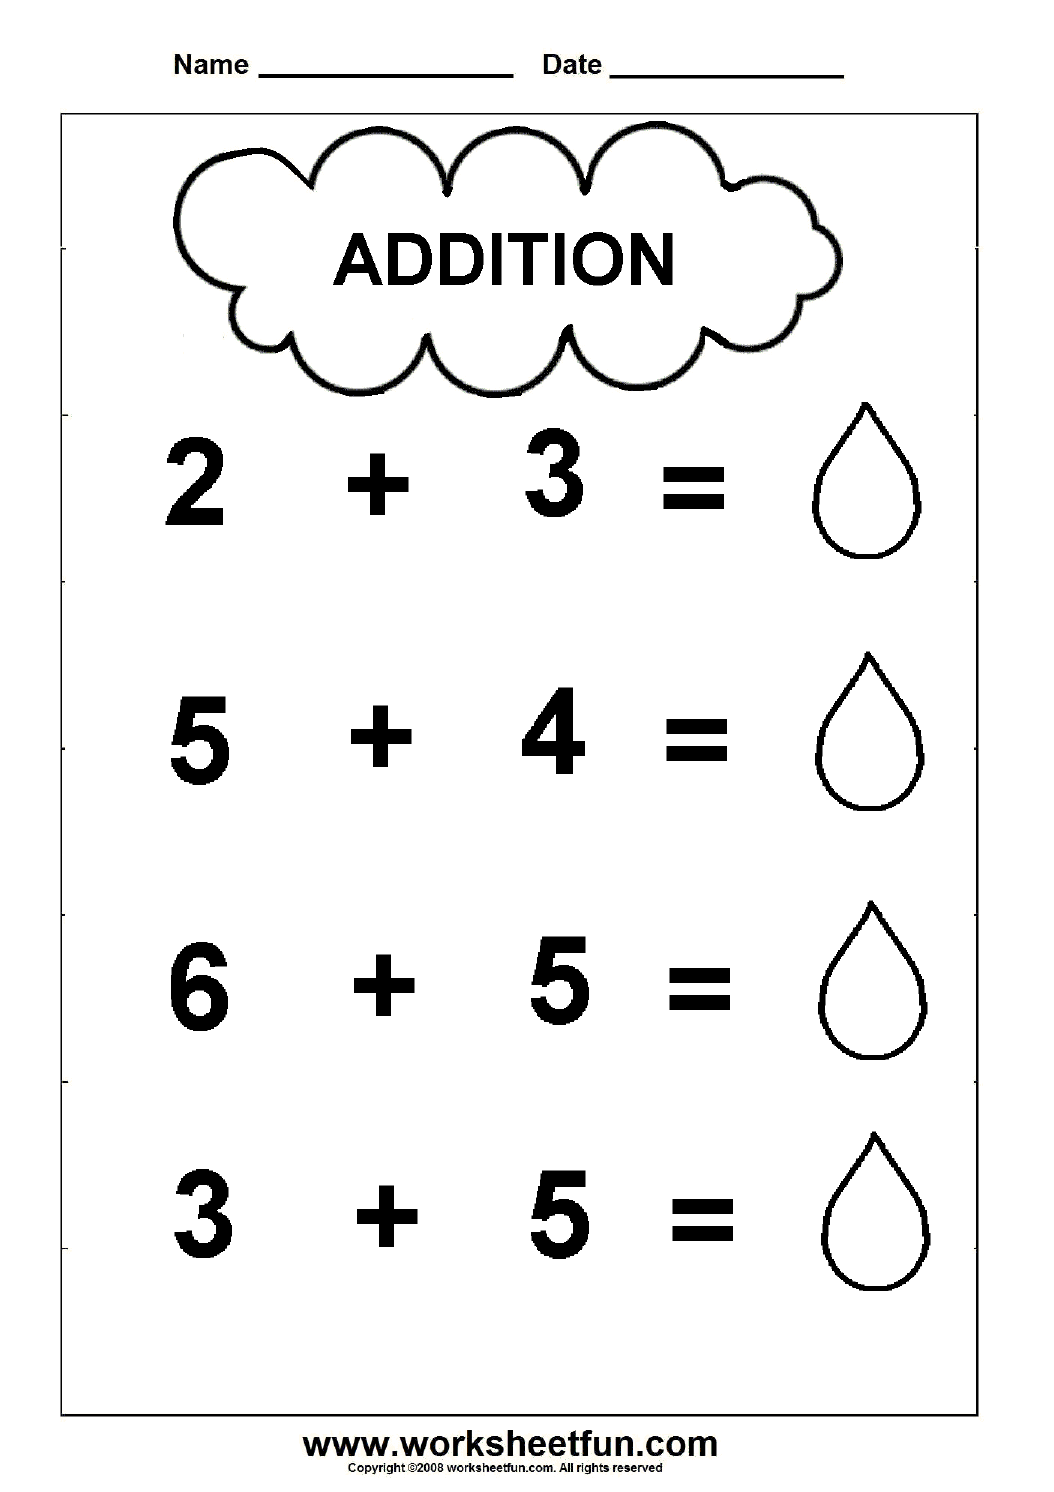 Addition 2 Worksheets Kindergarten Worksheets – Addition Worksheets Kindergarten